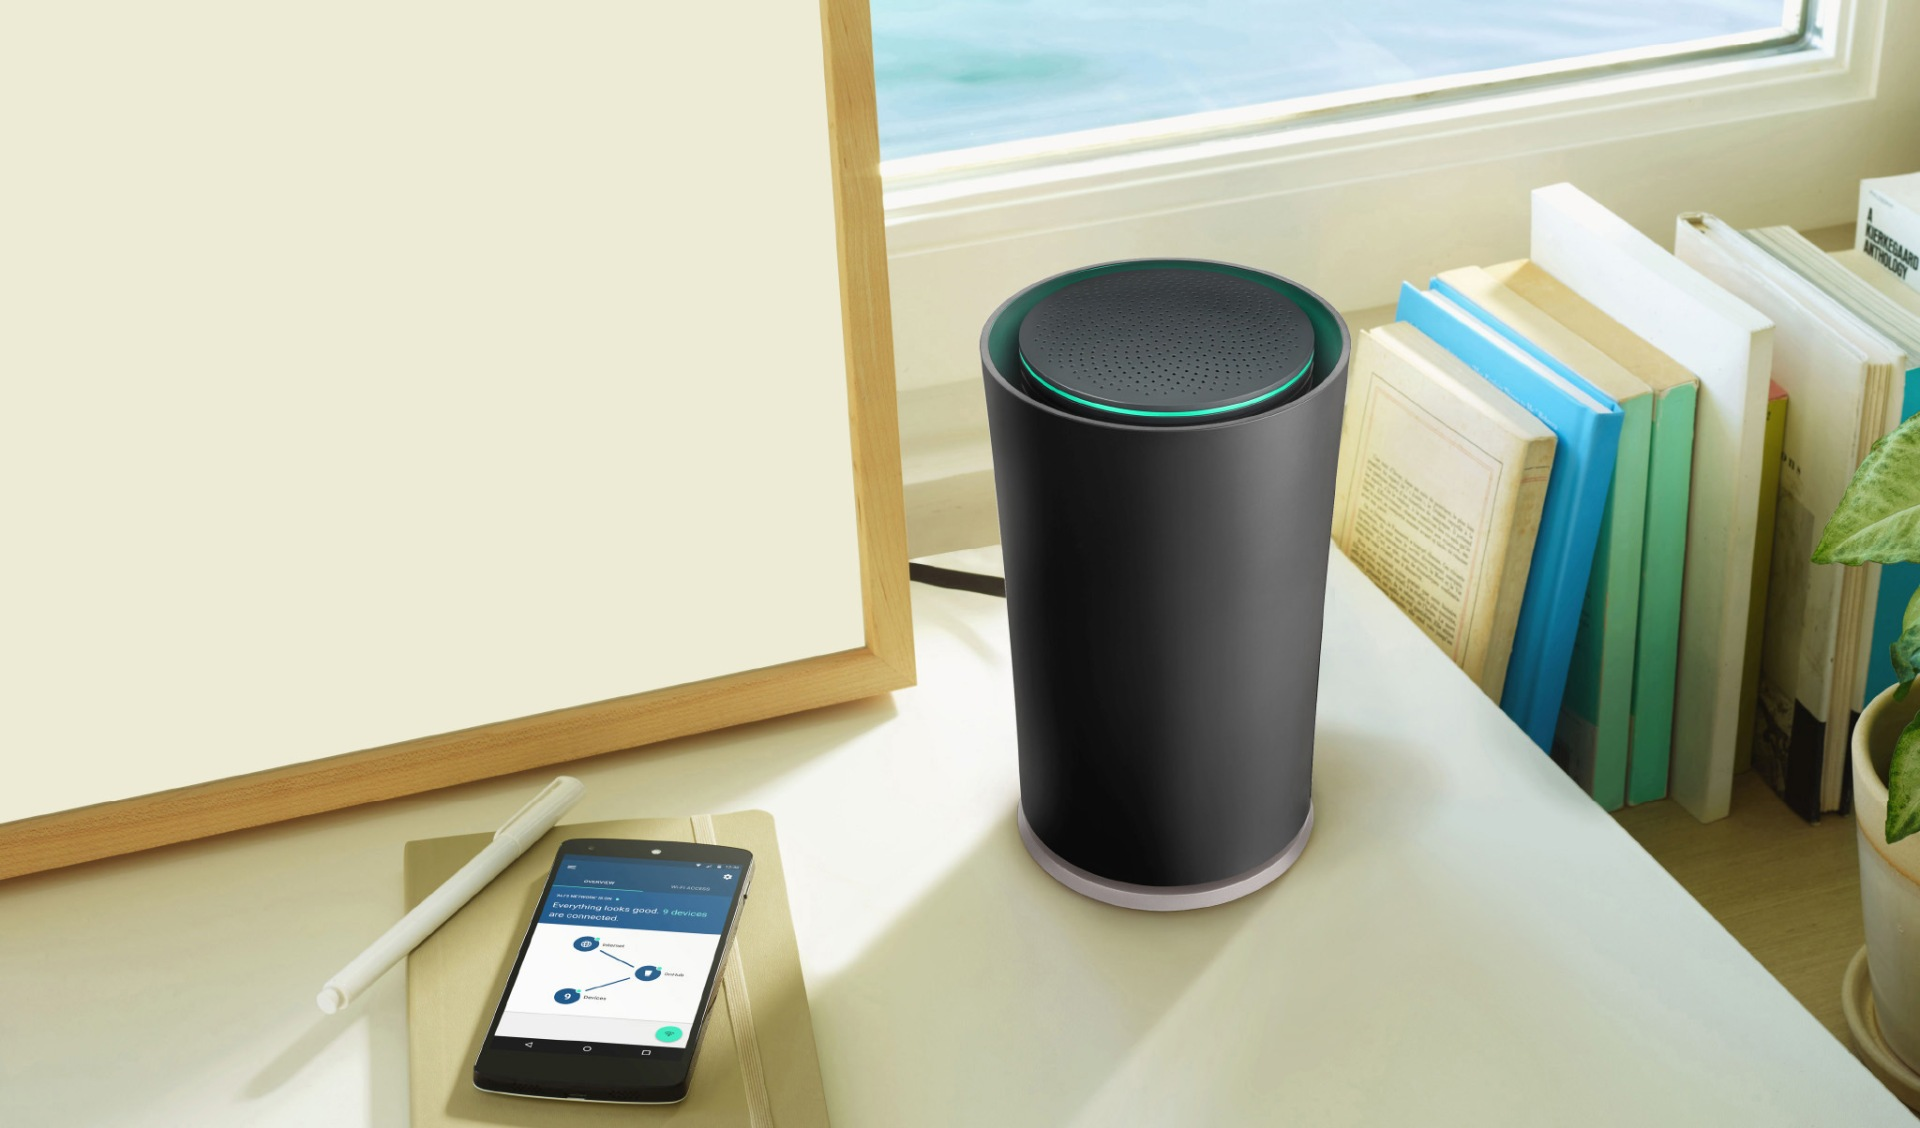 OnHub Google Pedro Topete Apple Blog Portugal